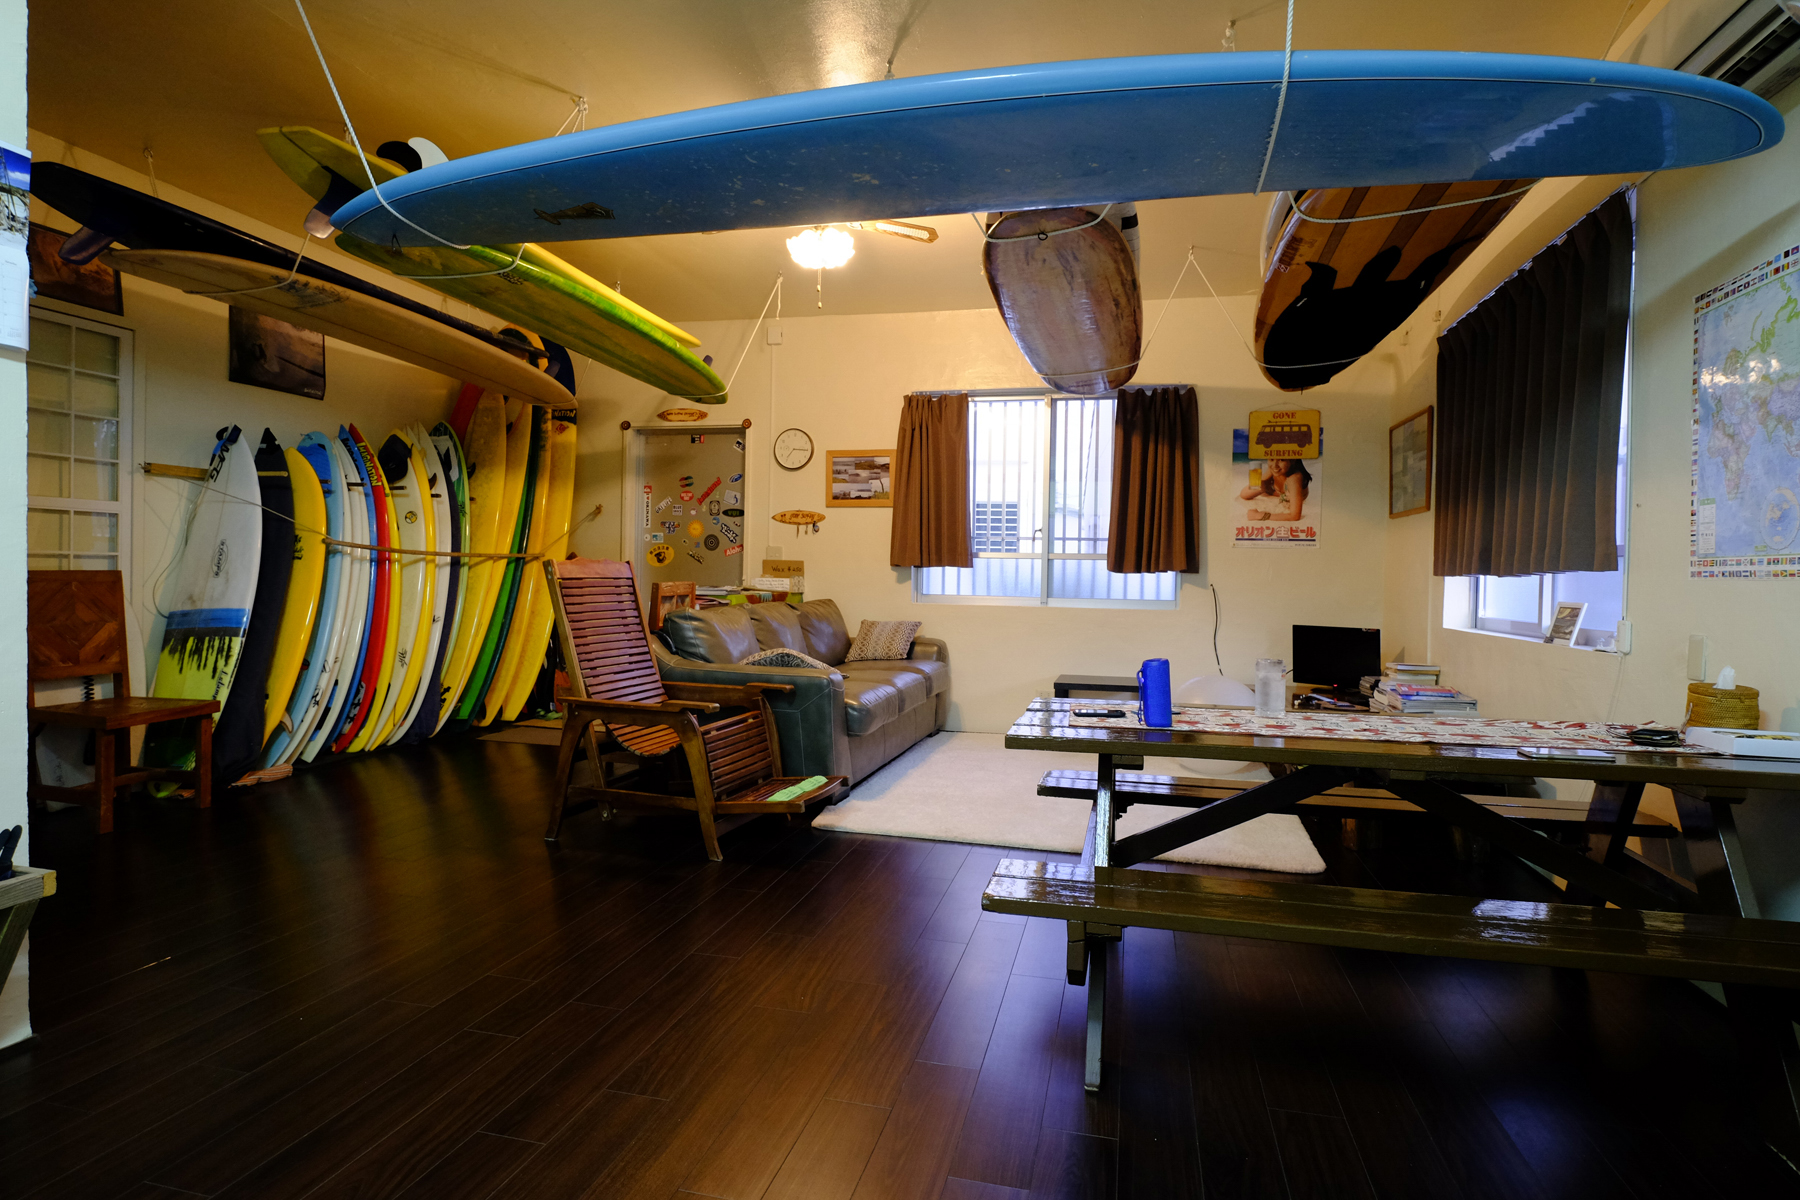 'Happy Surfing B&B', Okinawa